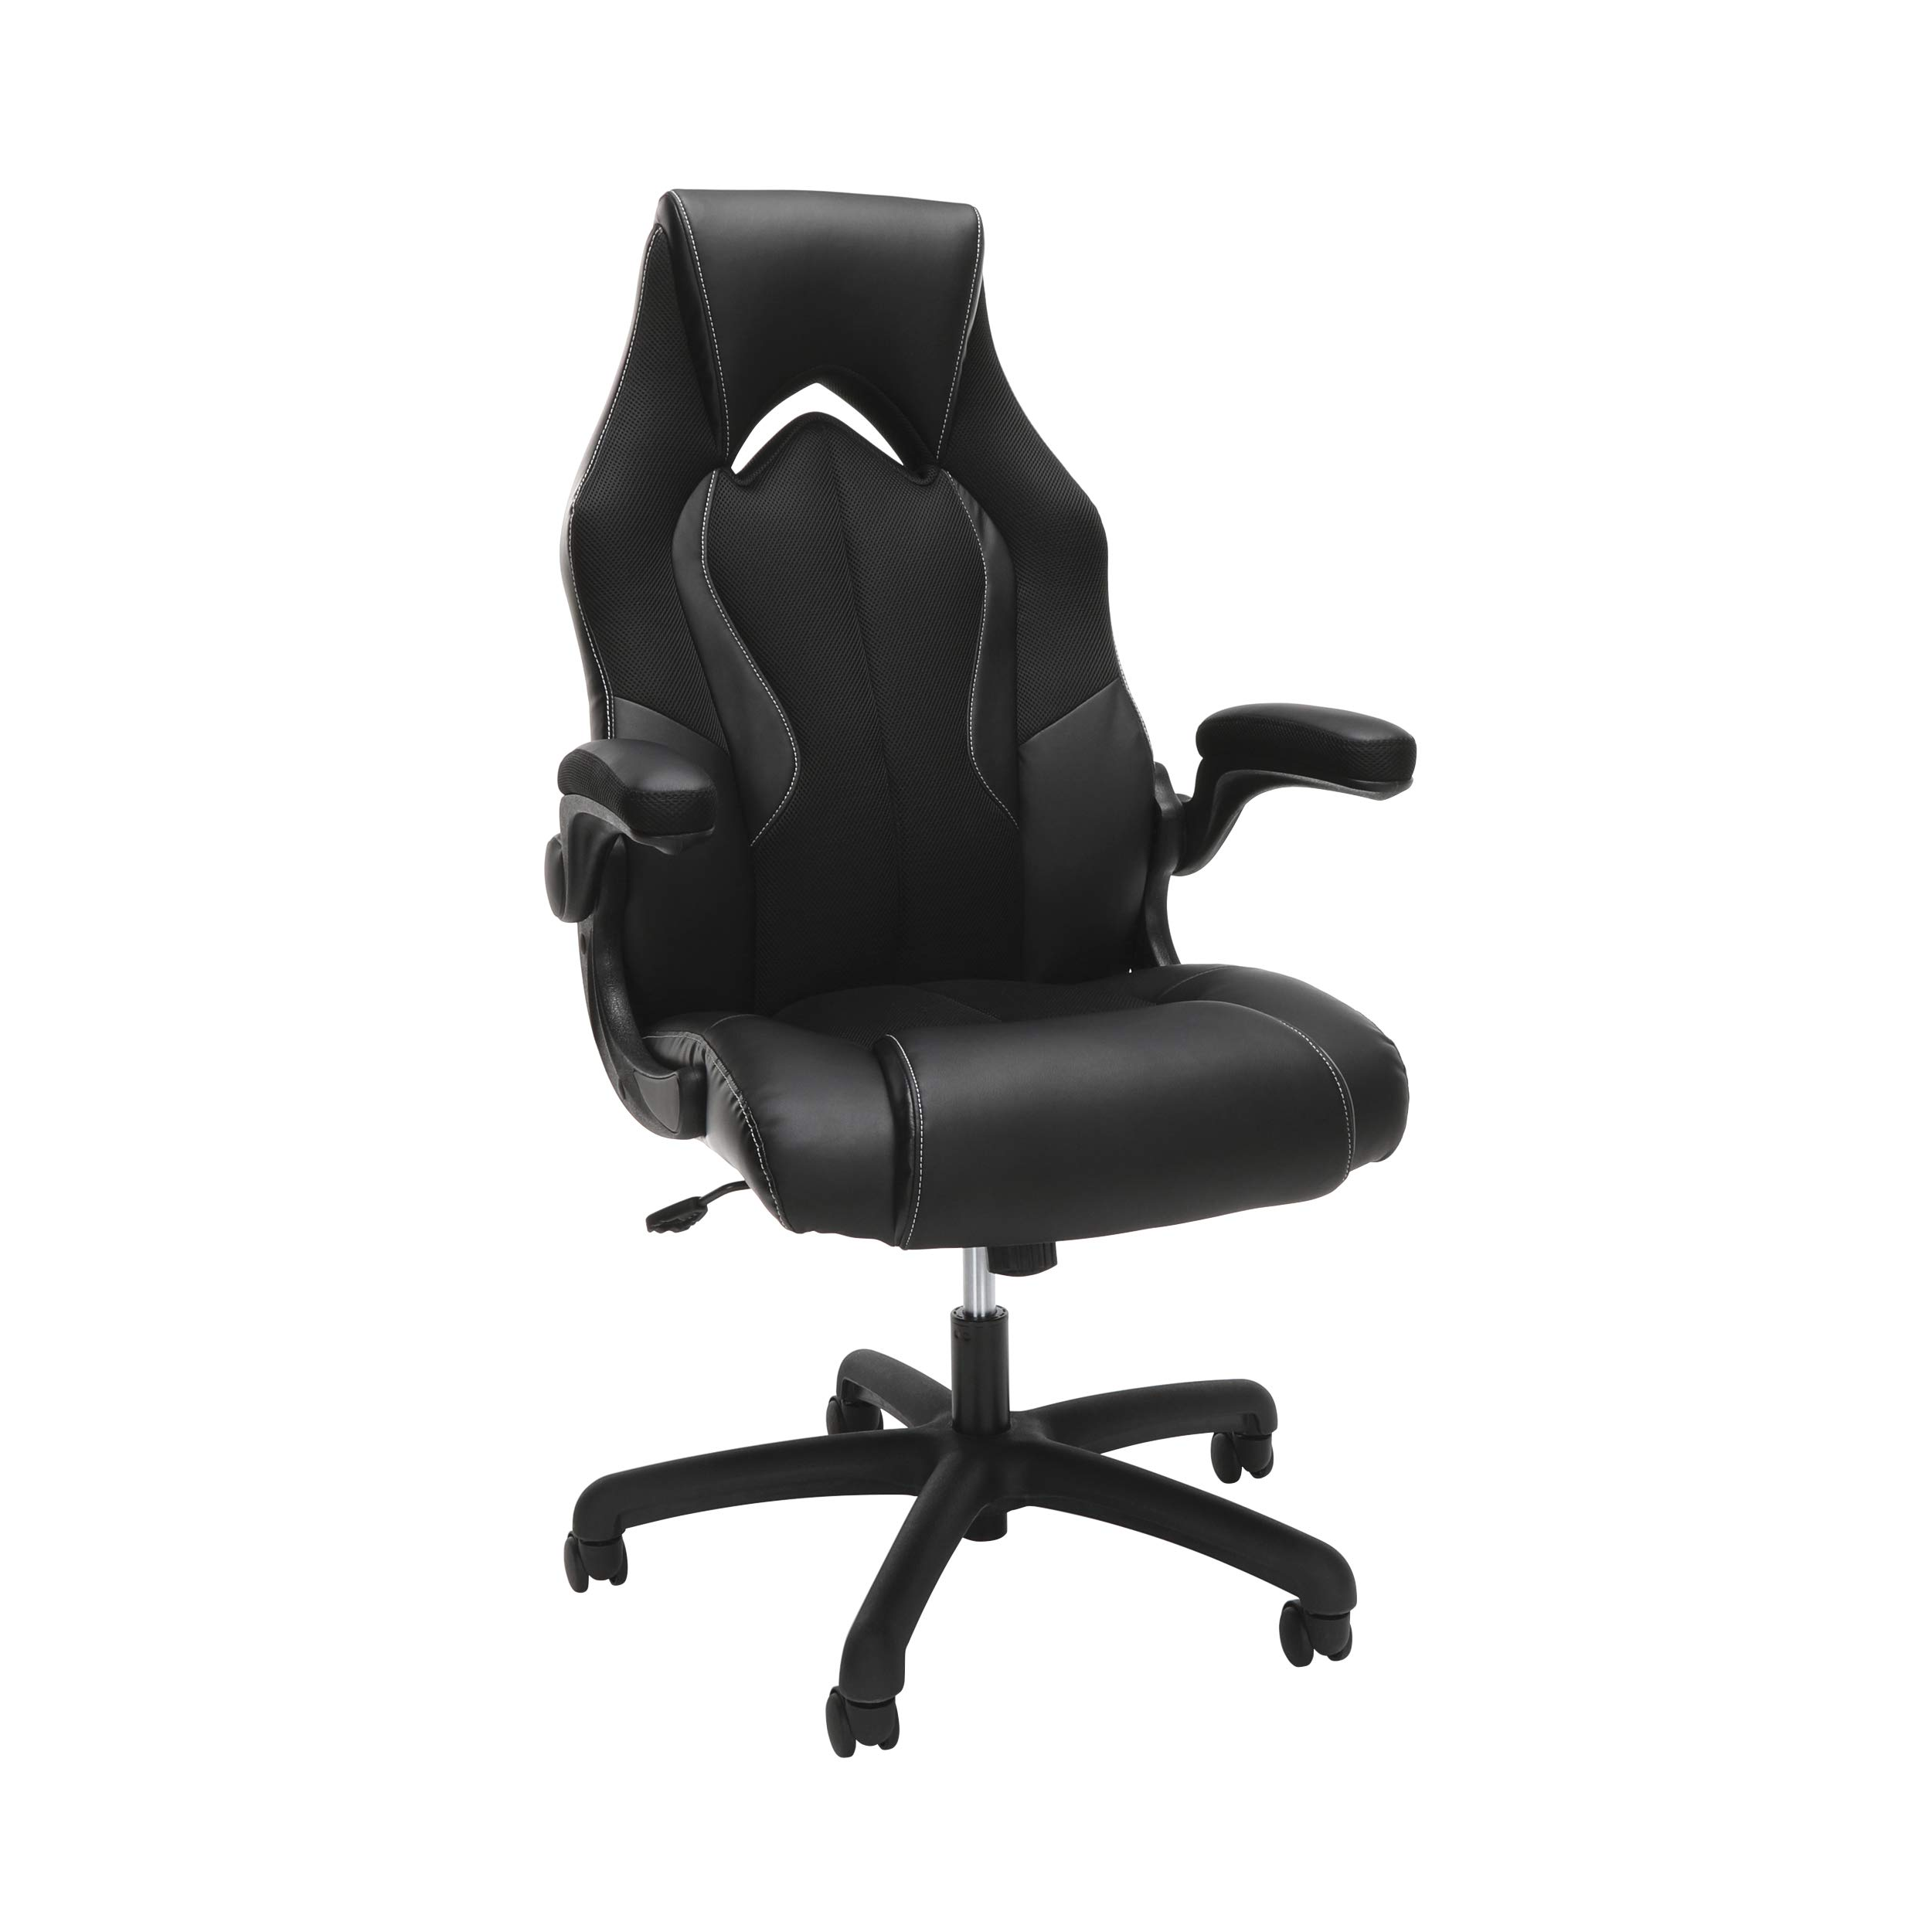 OFM Essentials Collection High-Back Racing Style Bonded Leather Gaming Chair, in Black (ESS-3086-BLK) by OFM